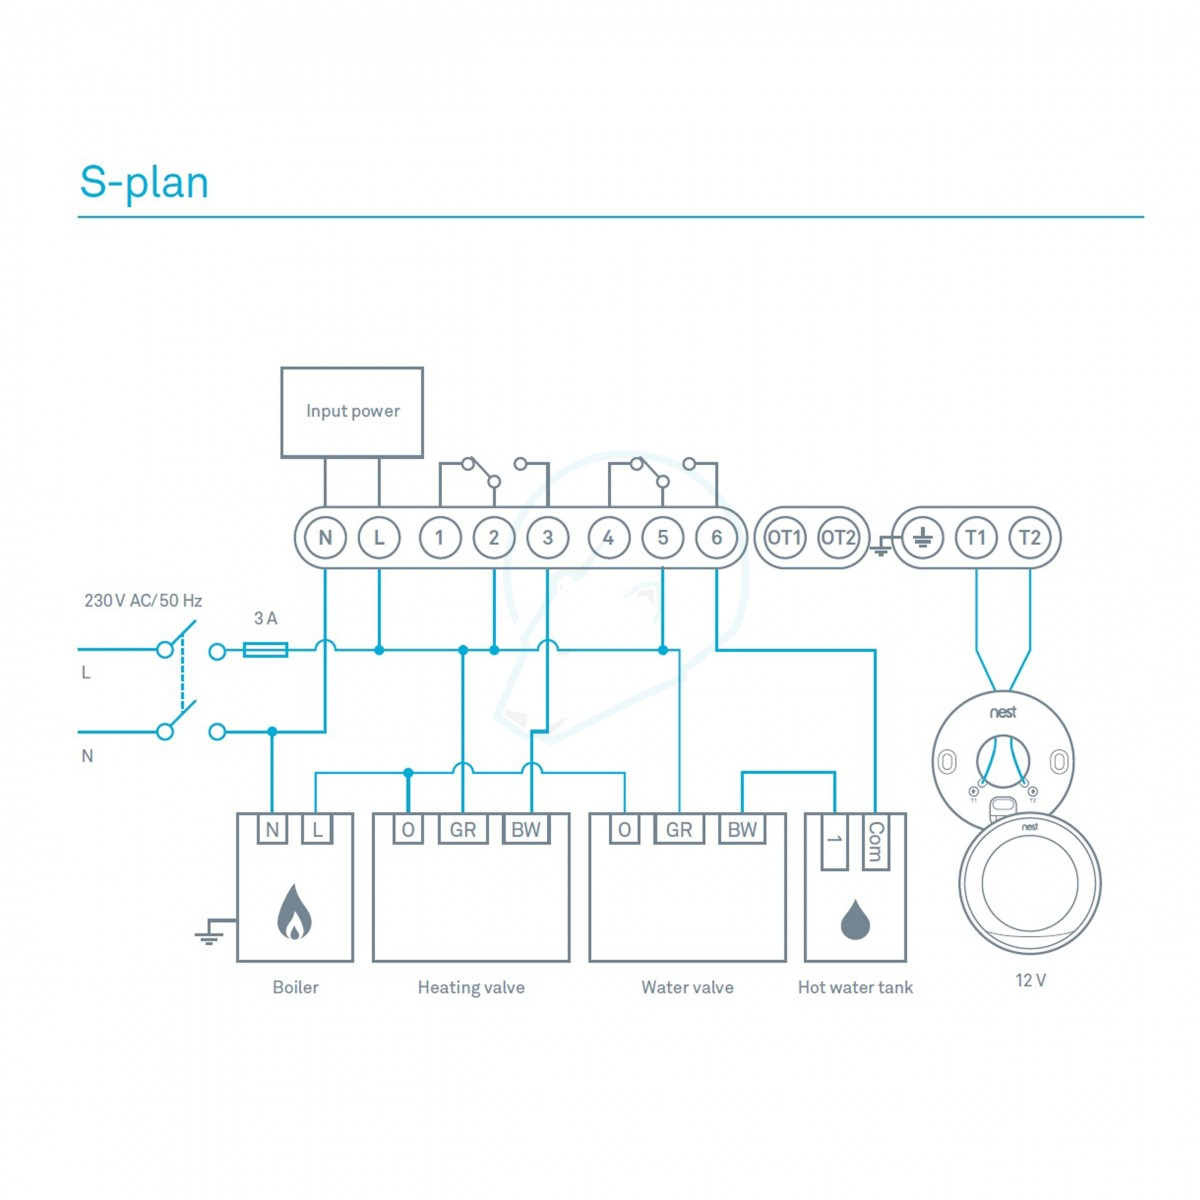 Nest 3Rd Generation Wiring Diagram Uk - Simple Wiring Diagram - Nest Wiring Diagram 3Rd Generation